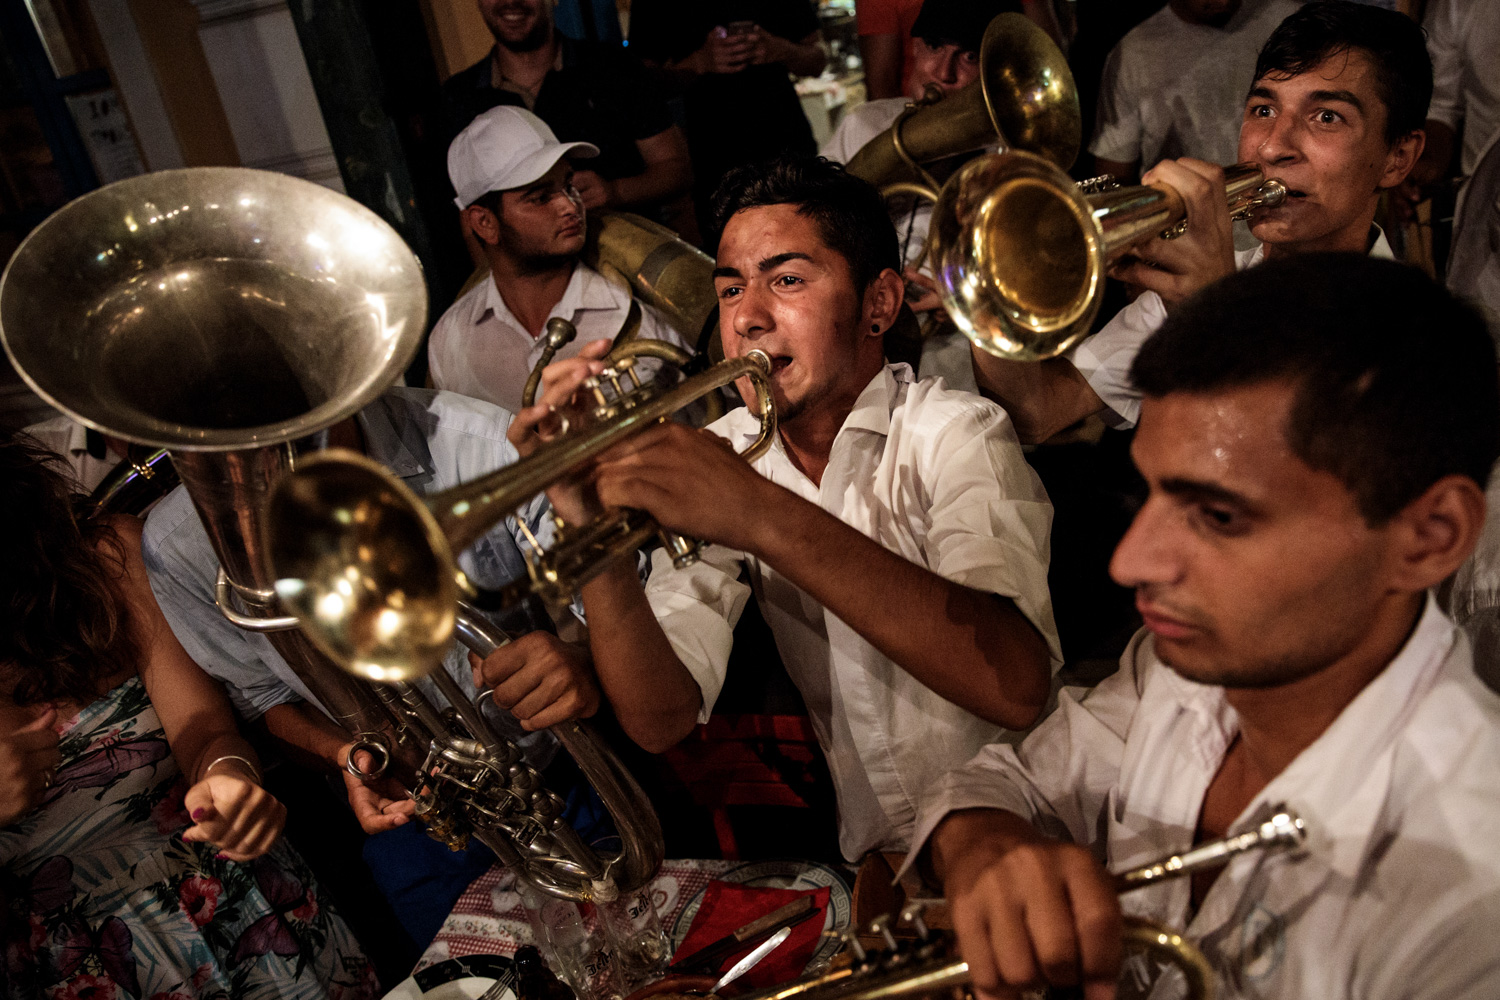 GUCA, SERBIA: A brass band performs in a restaurant during the Guca Trumpet Festival on August 11, 2017 in Guca, Serbia.